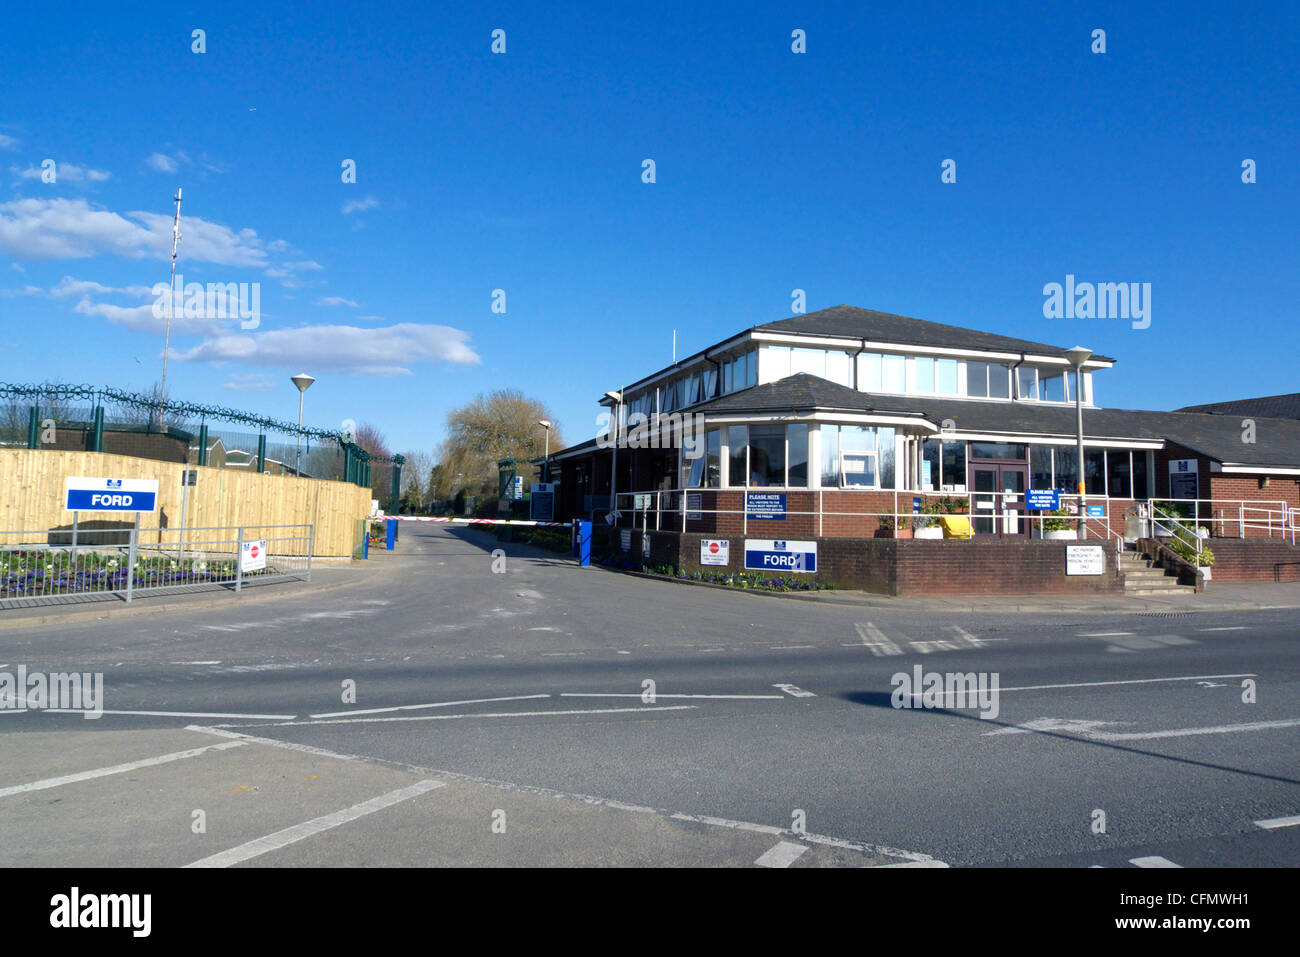 united kingdom west sussex ford the entrance to ford open prison - Stock Image